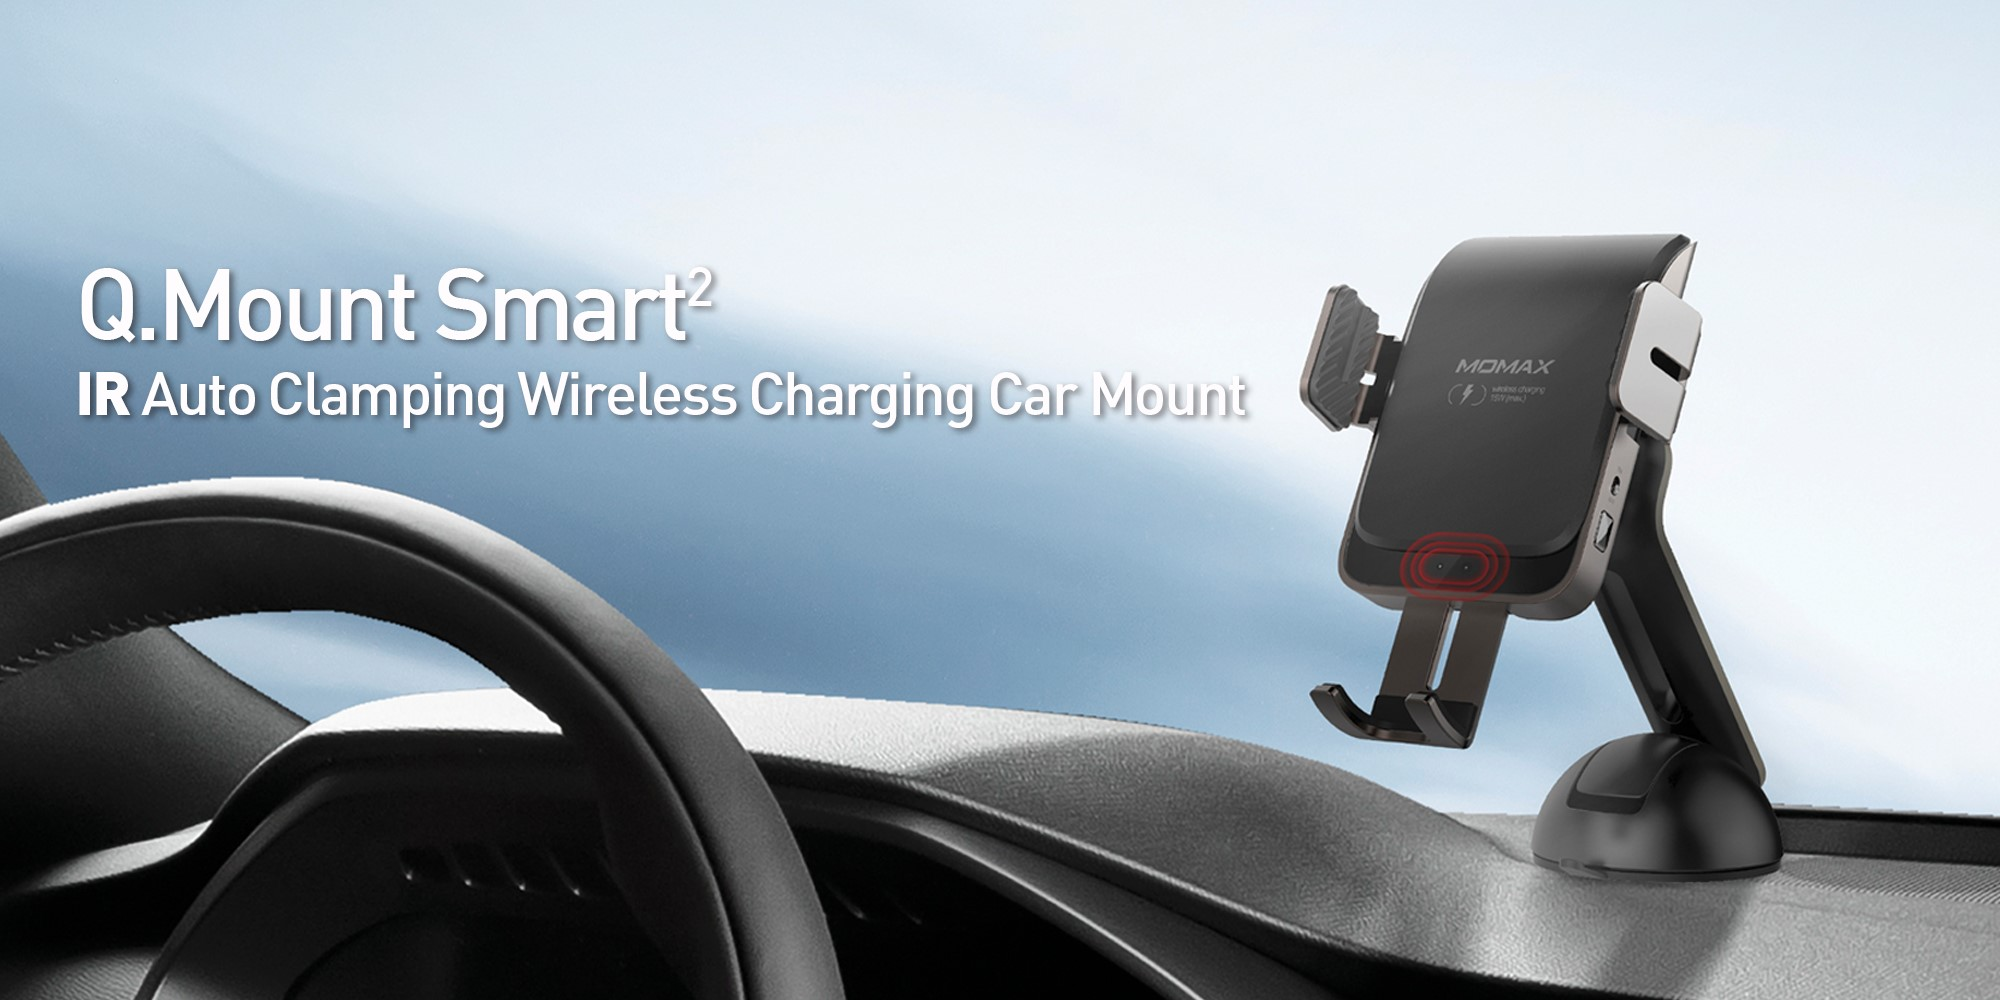 Momax Mount Smart Clamping Wireless Charging